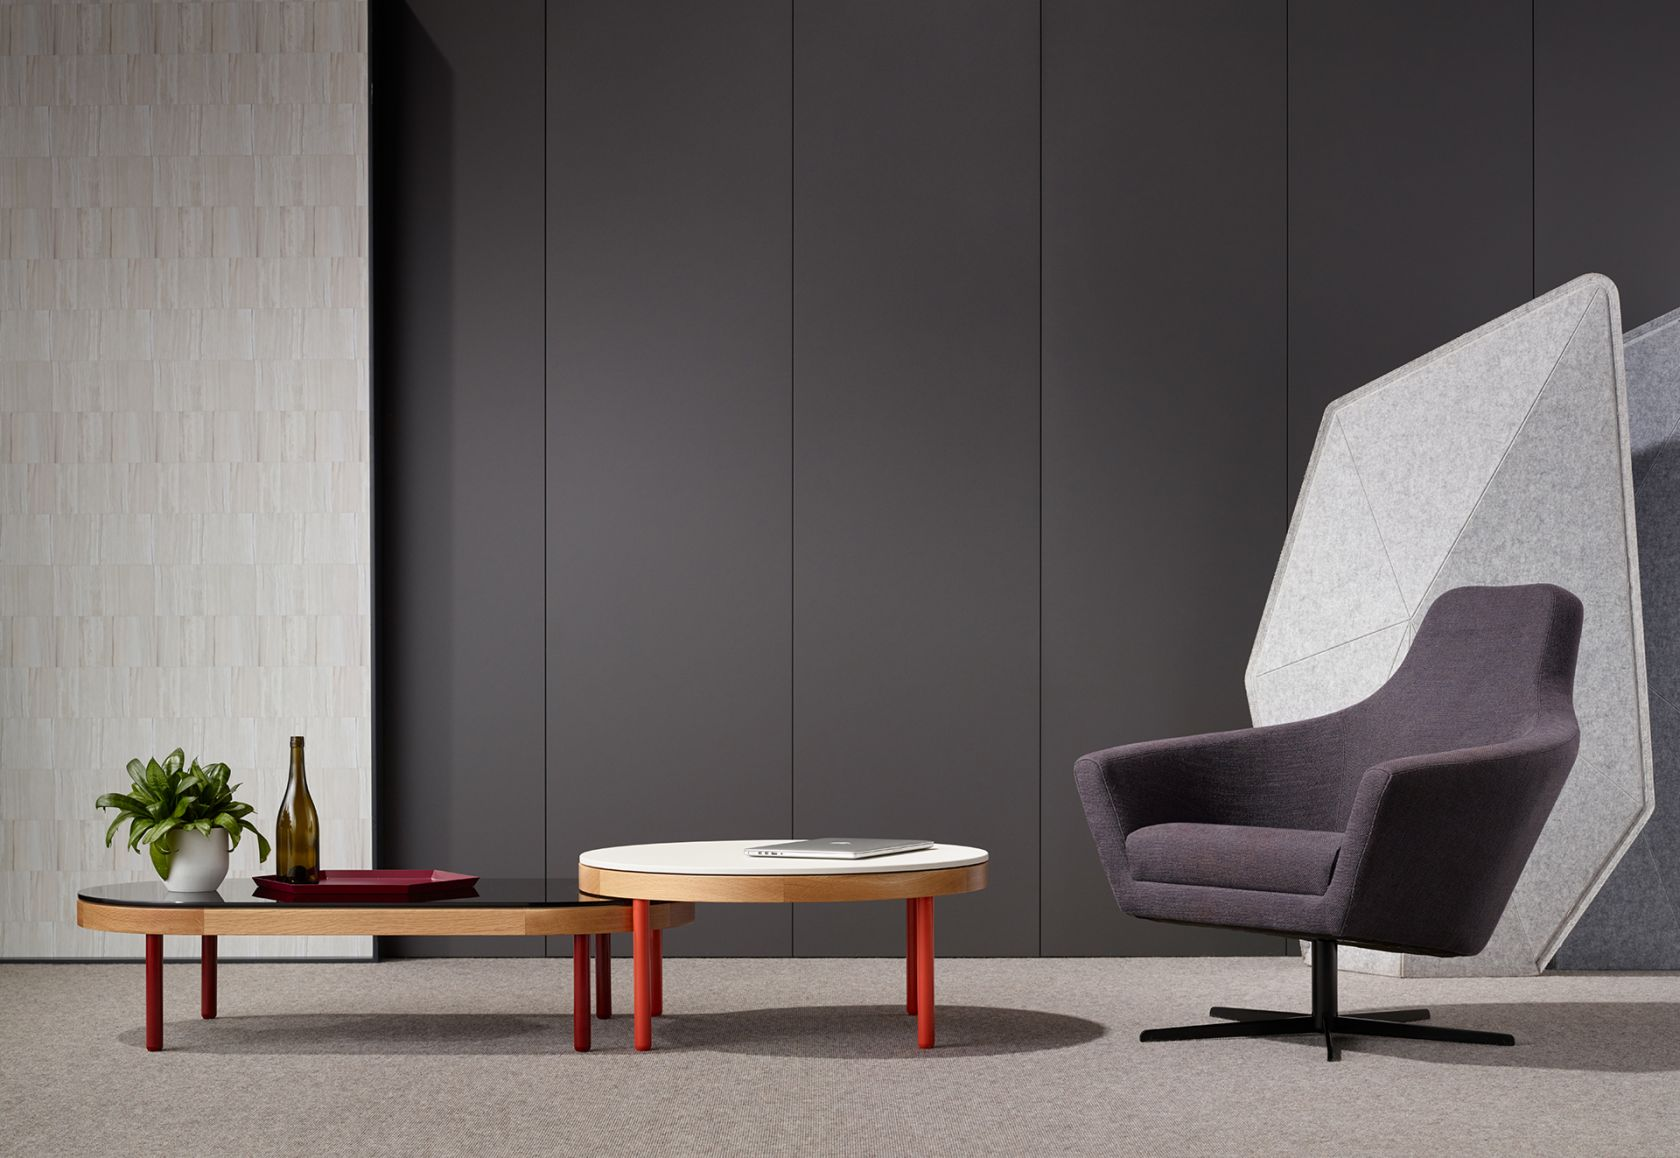 Goodwood Table, Paloma Chair and Soft Boundary